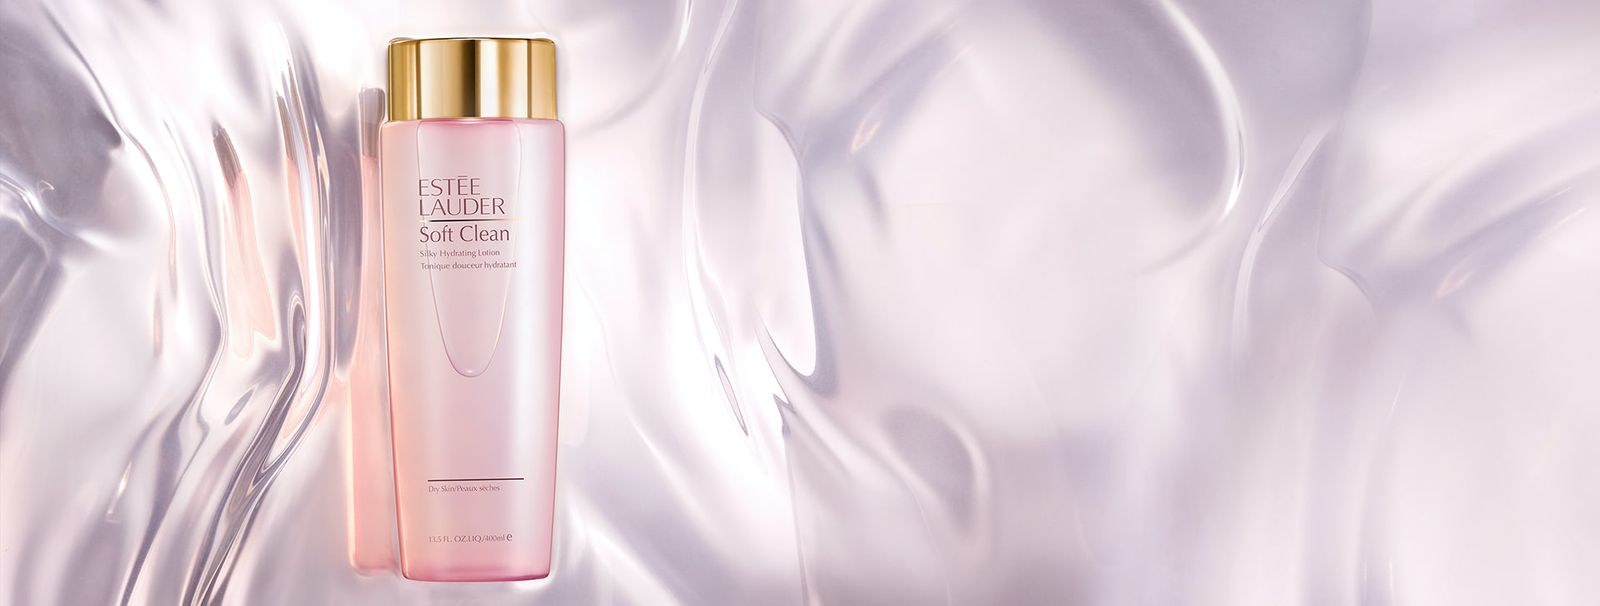 Estee Lauder/New soft clean IMC Digital Campaign